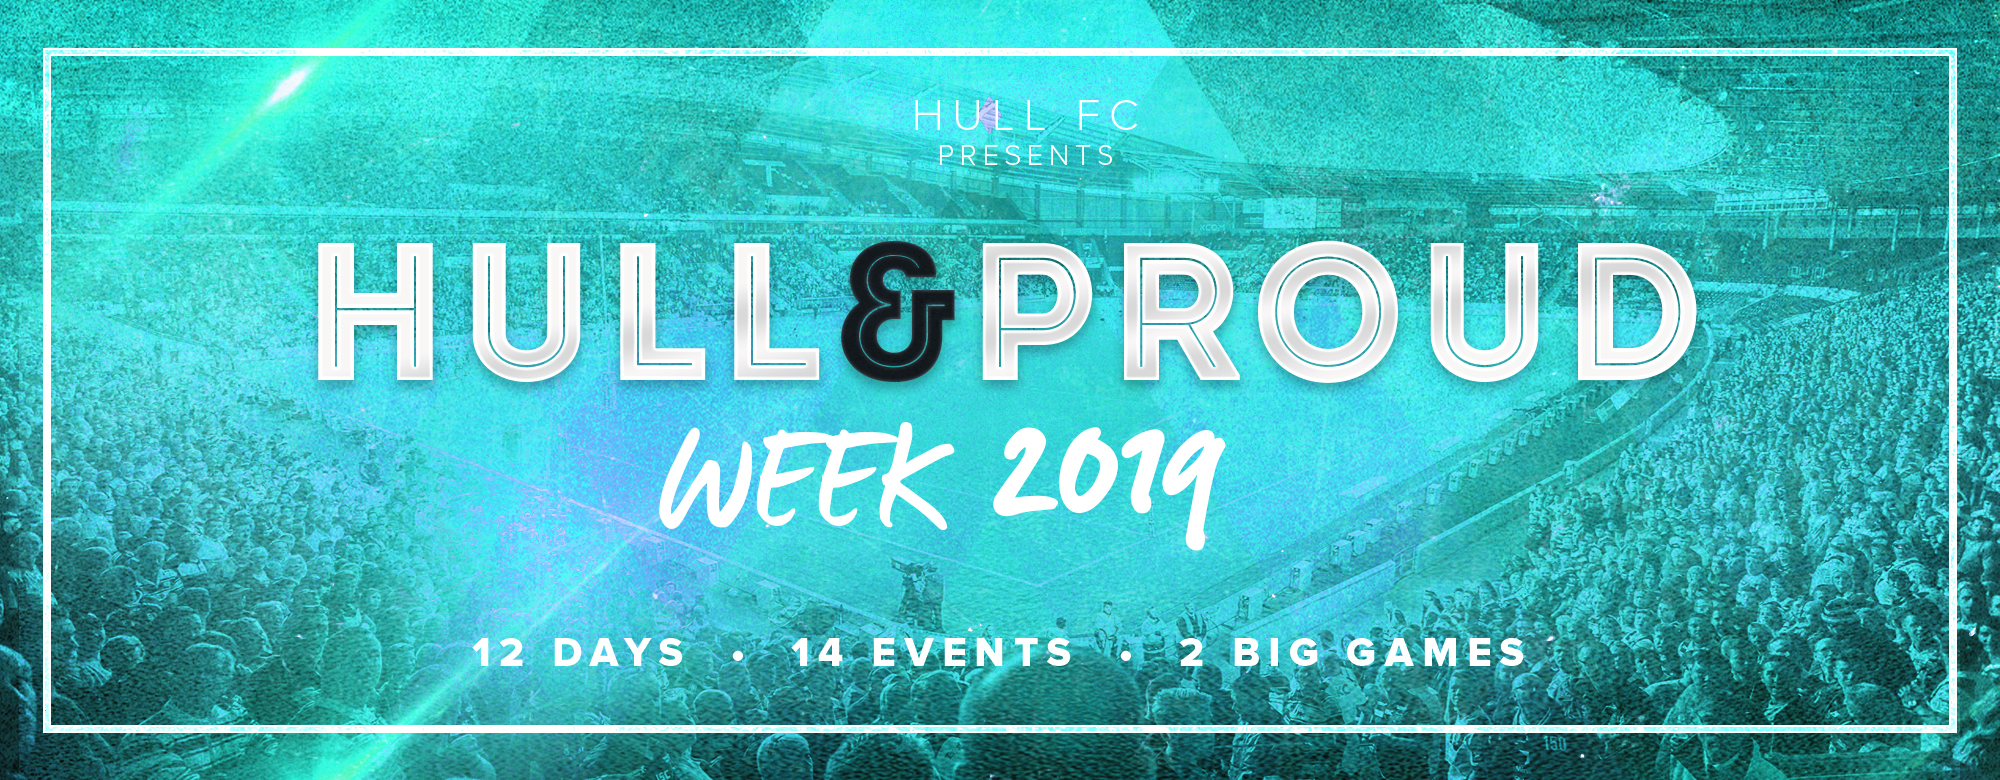 Biggest Ever Hull&Proud Week Schedule Revealed For 2019!